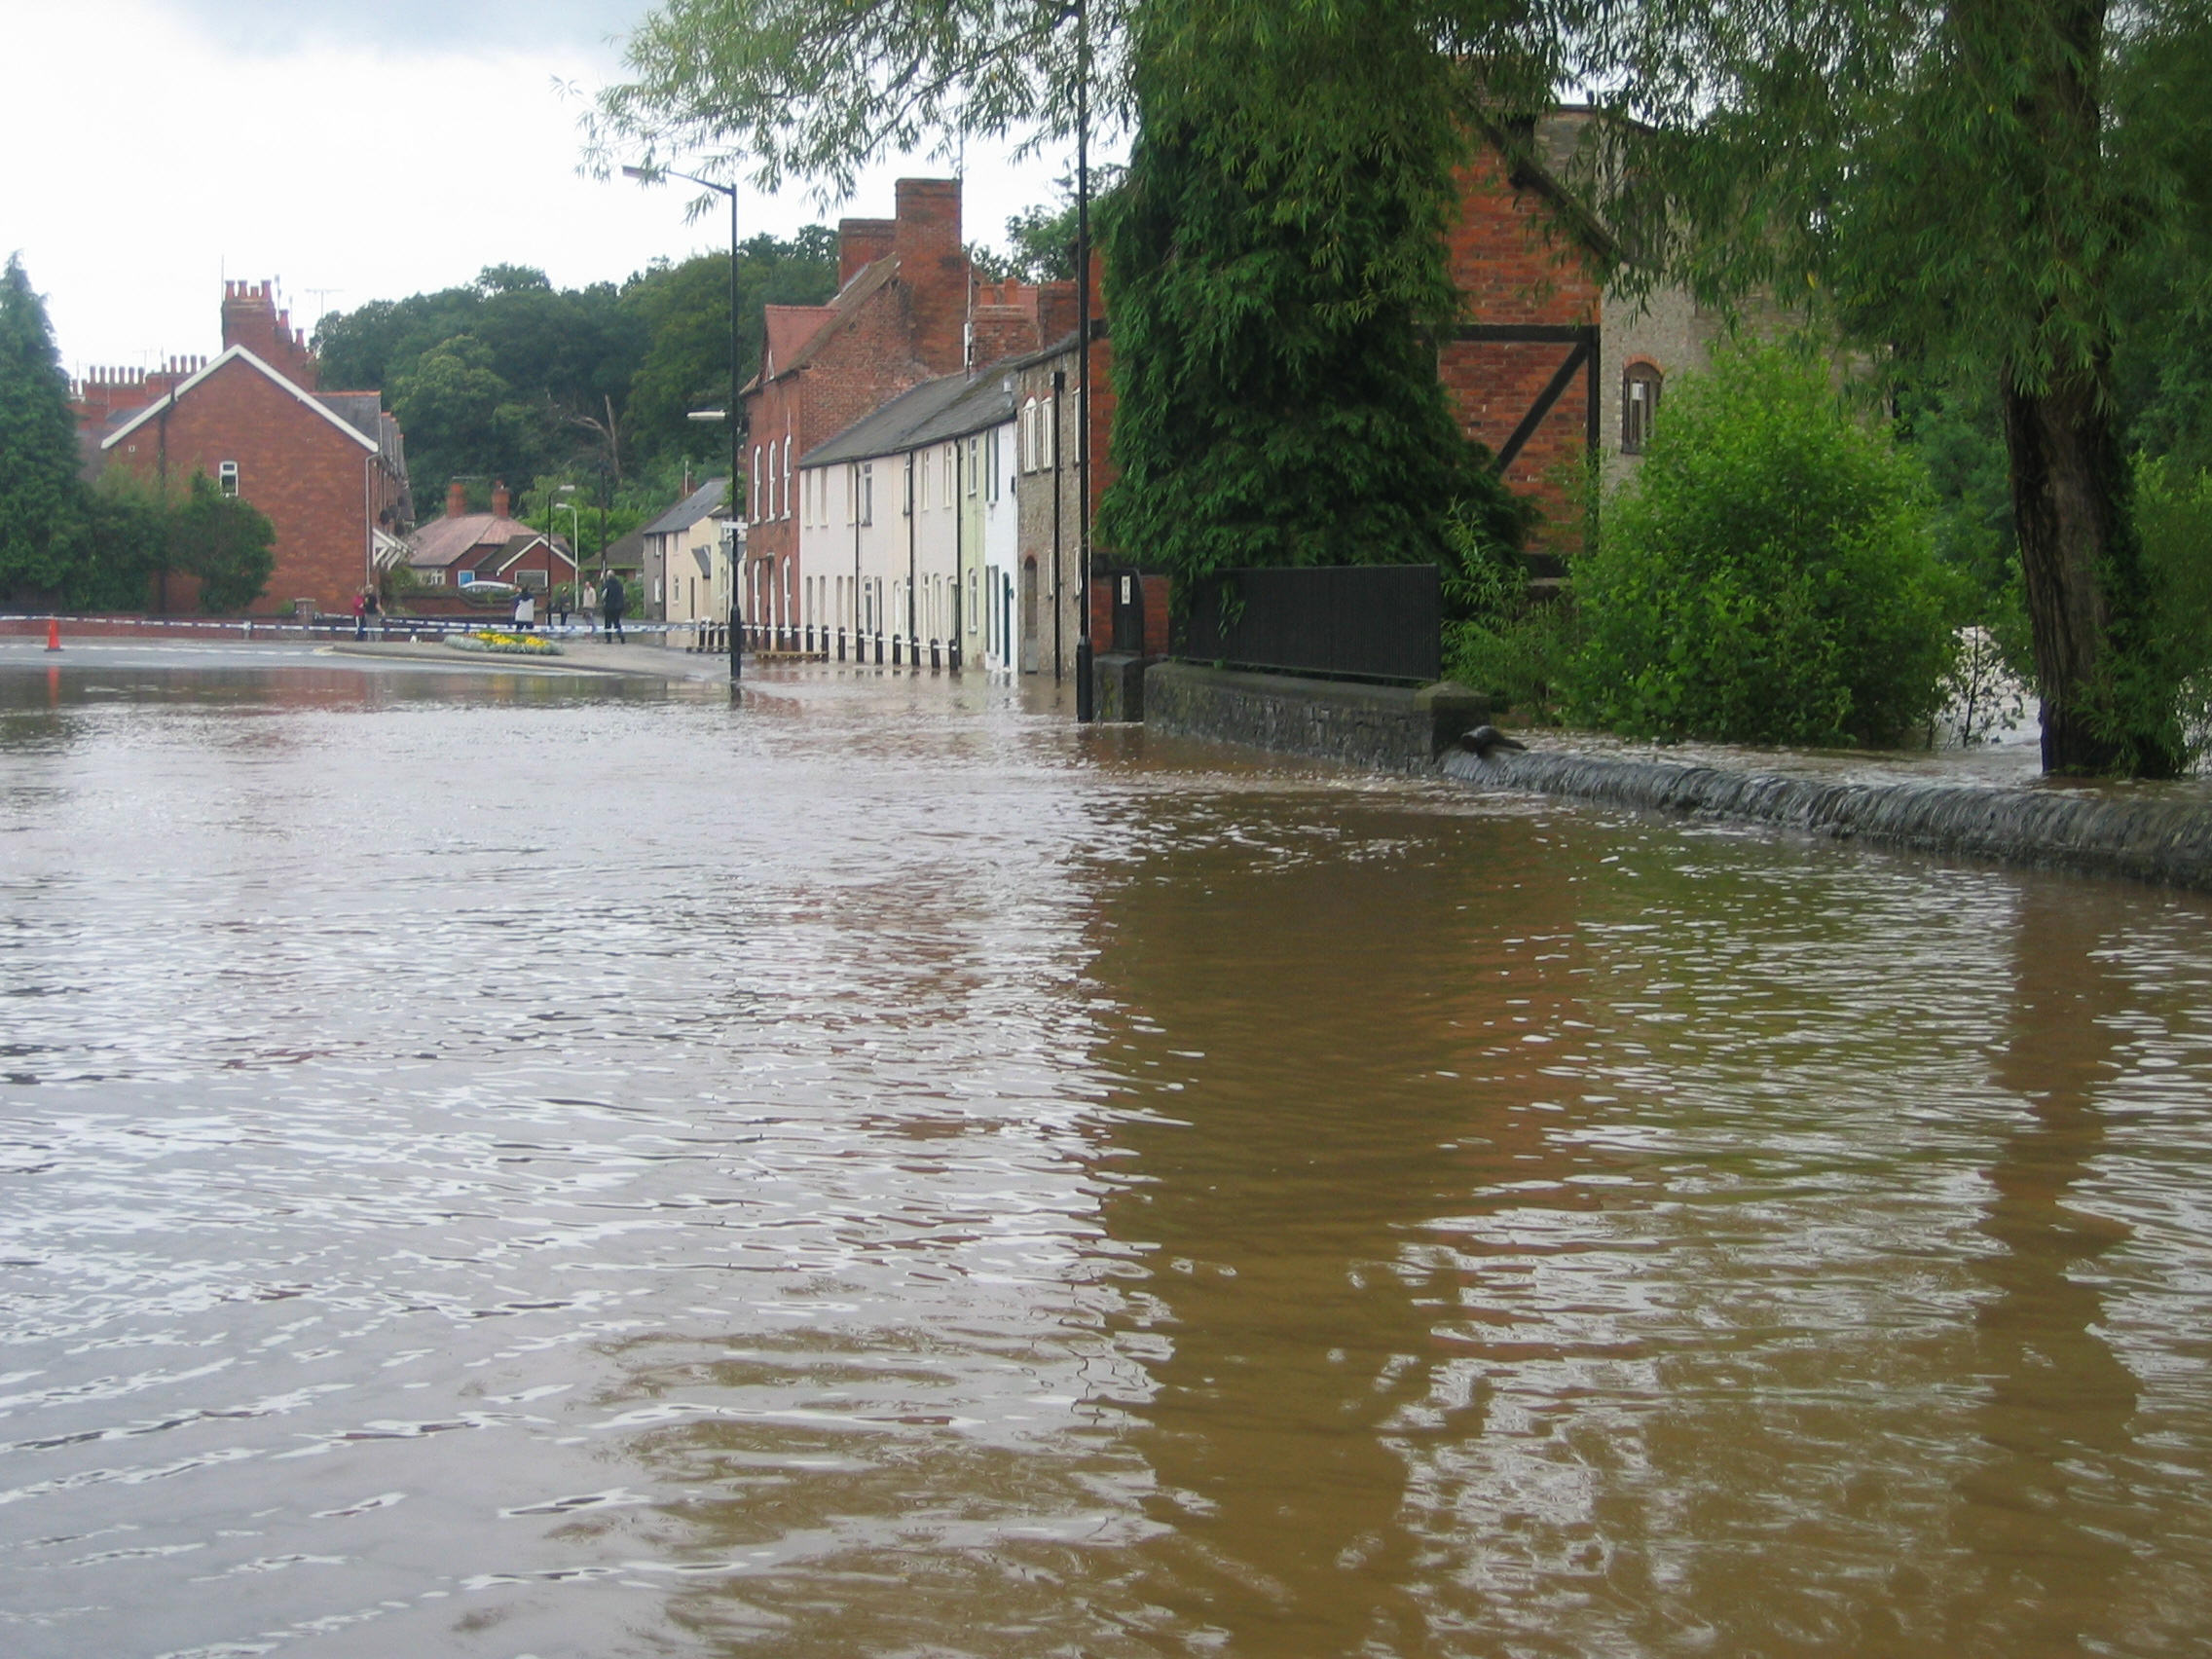 flooding in Ludlow - Temeside July 2007